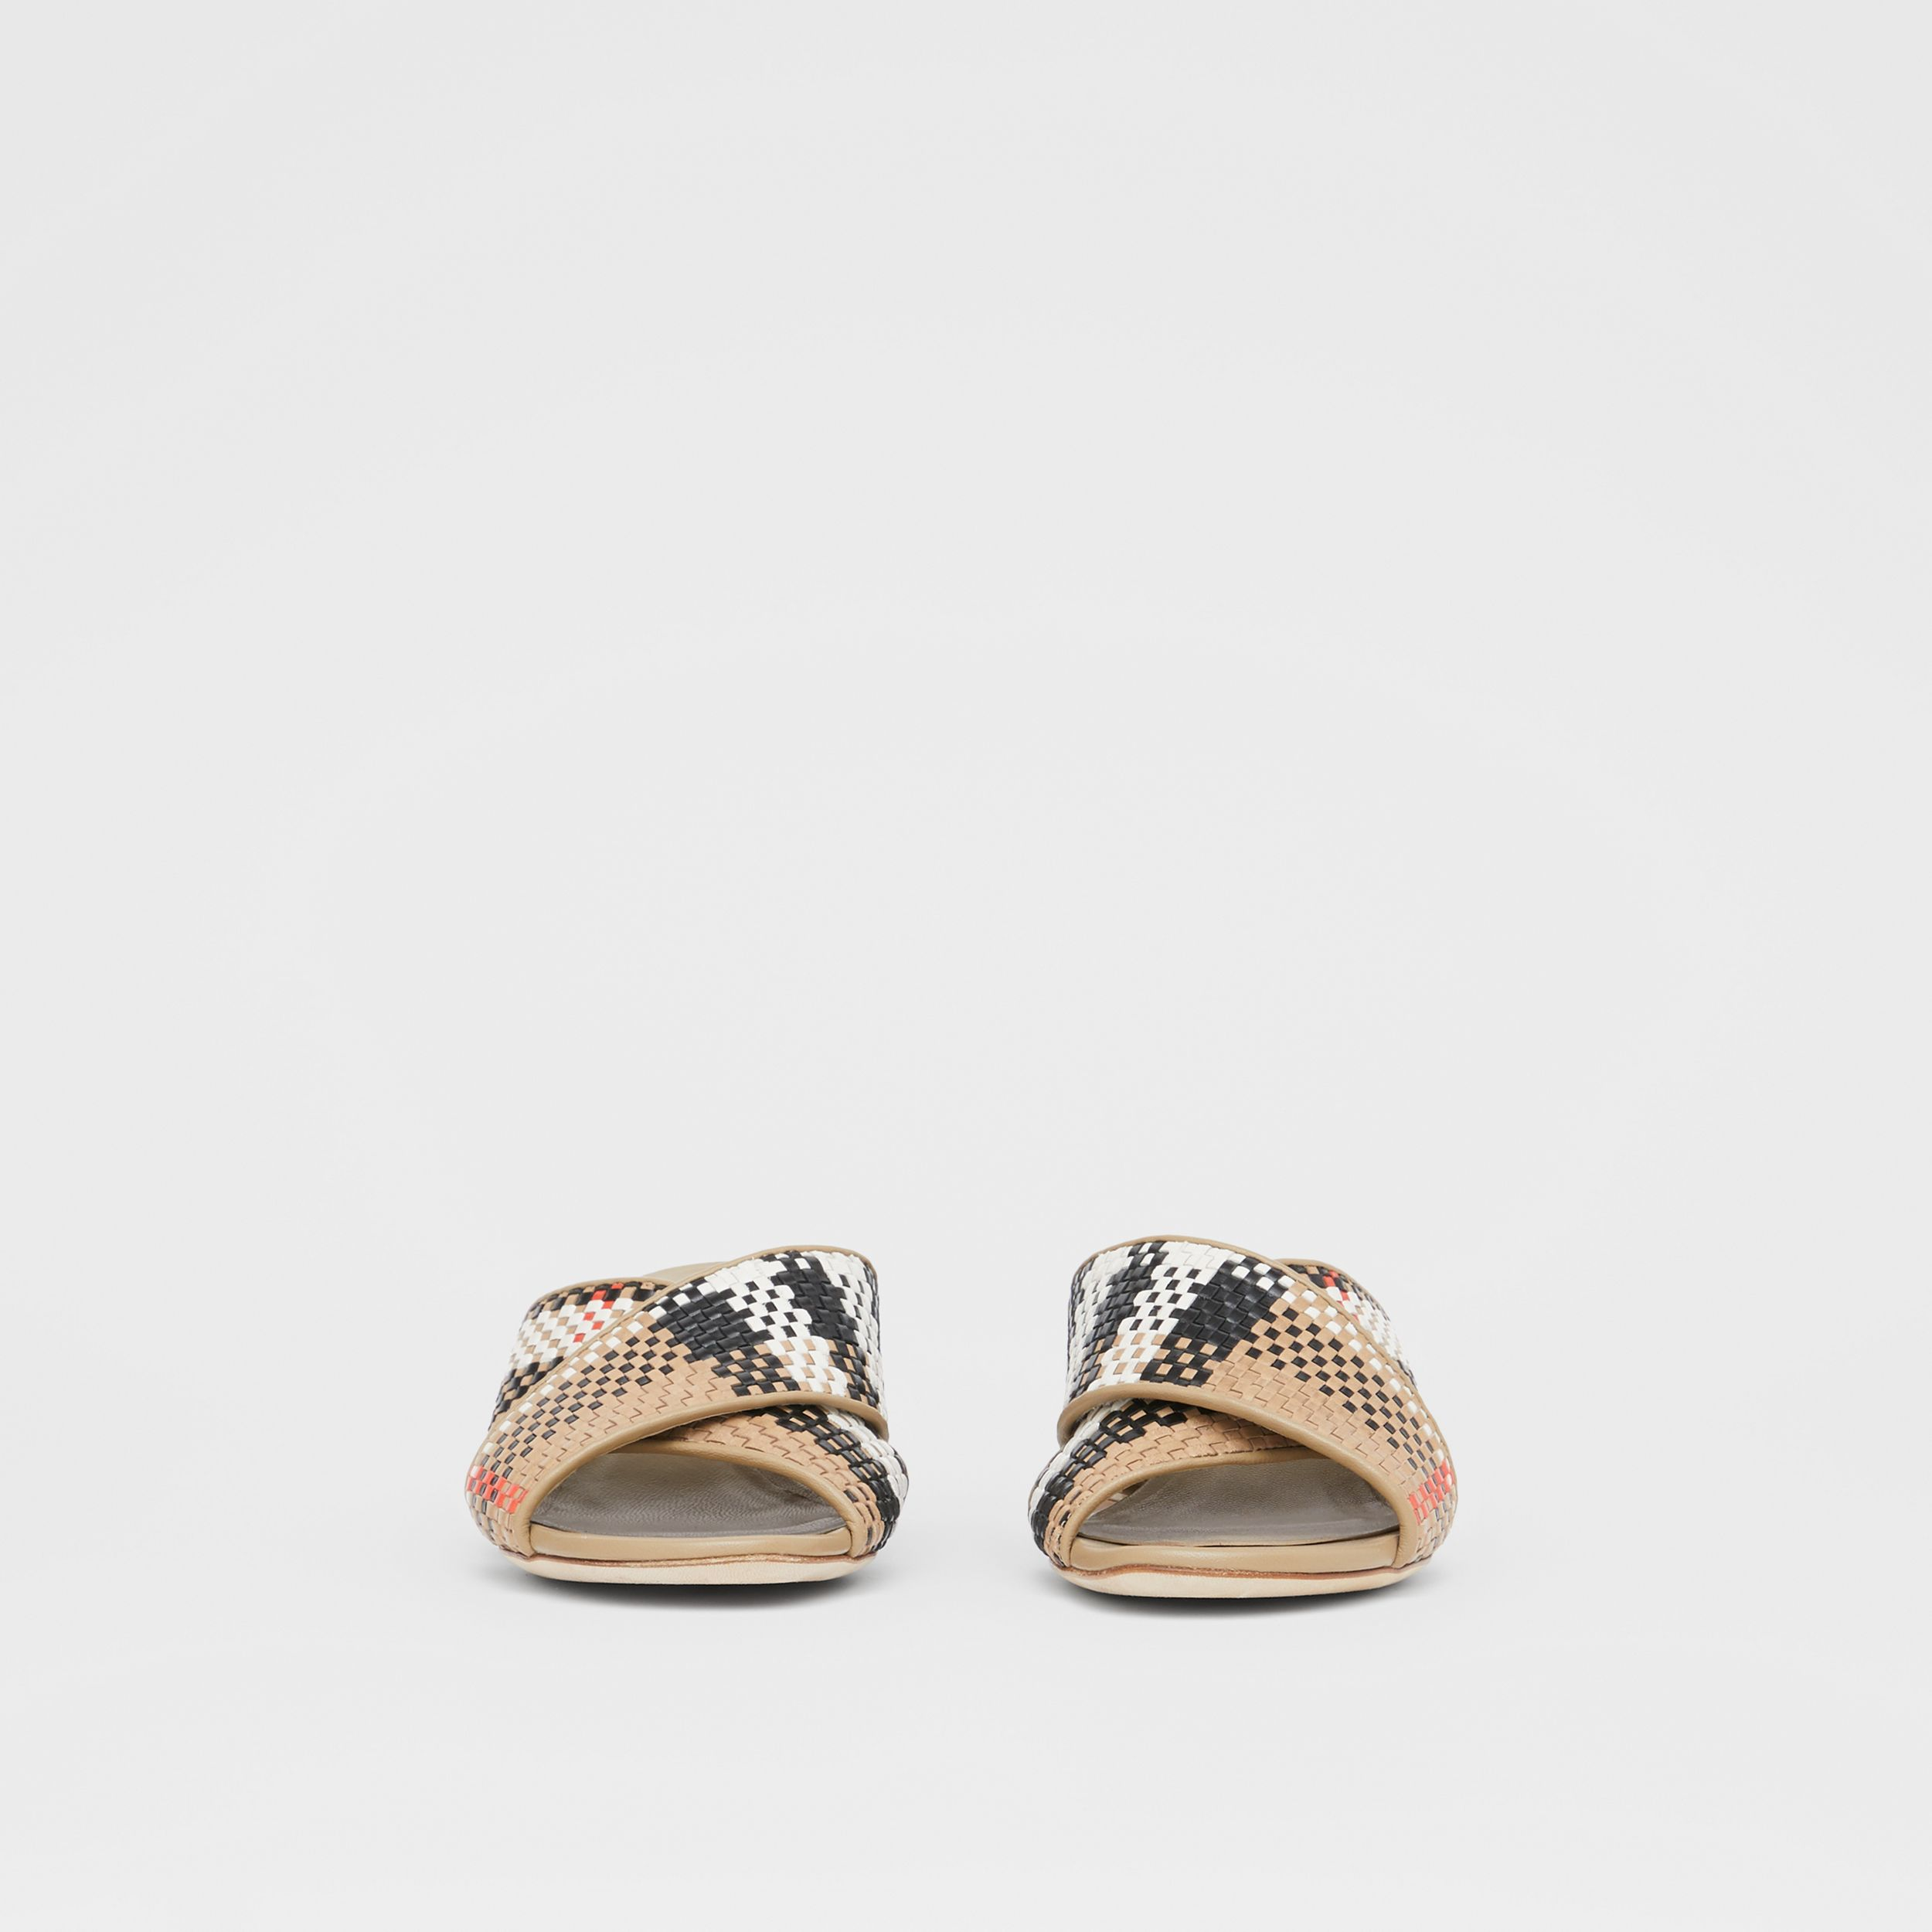 Latticed Leather Block-heel Sandals in Archive Beige - Women | Burberry - 4